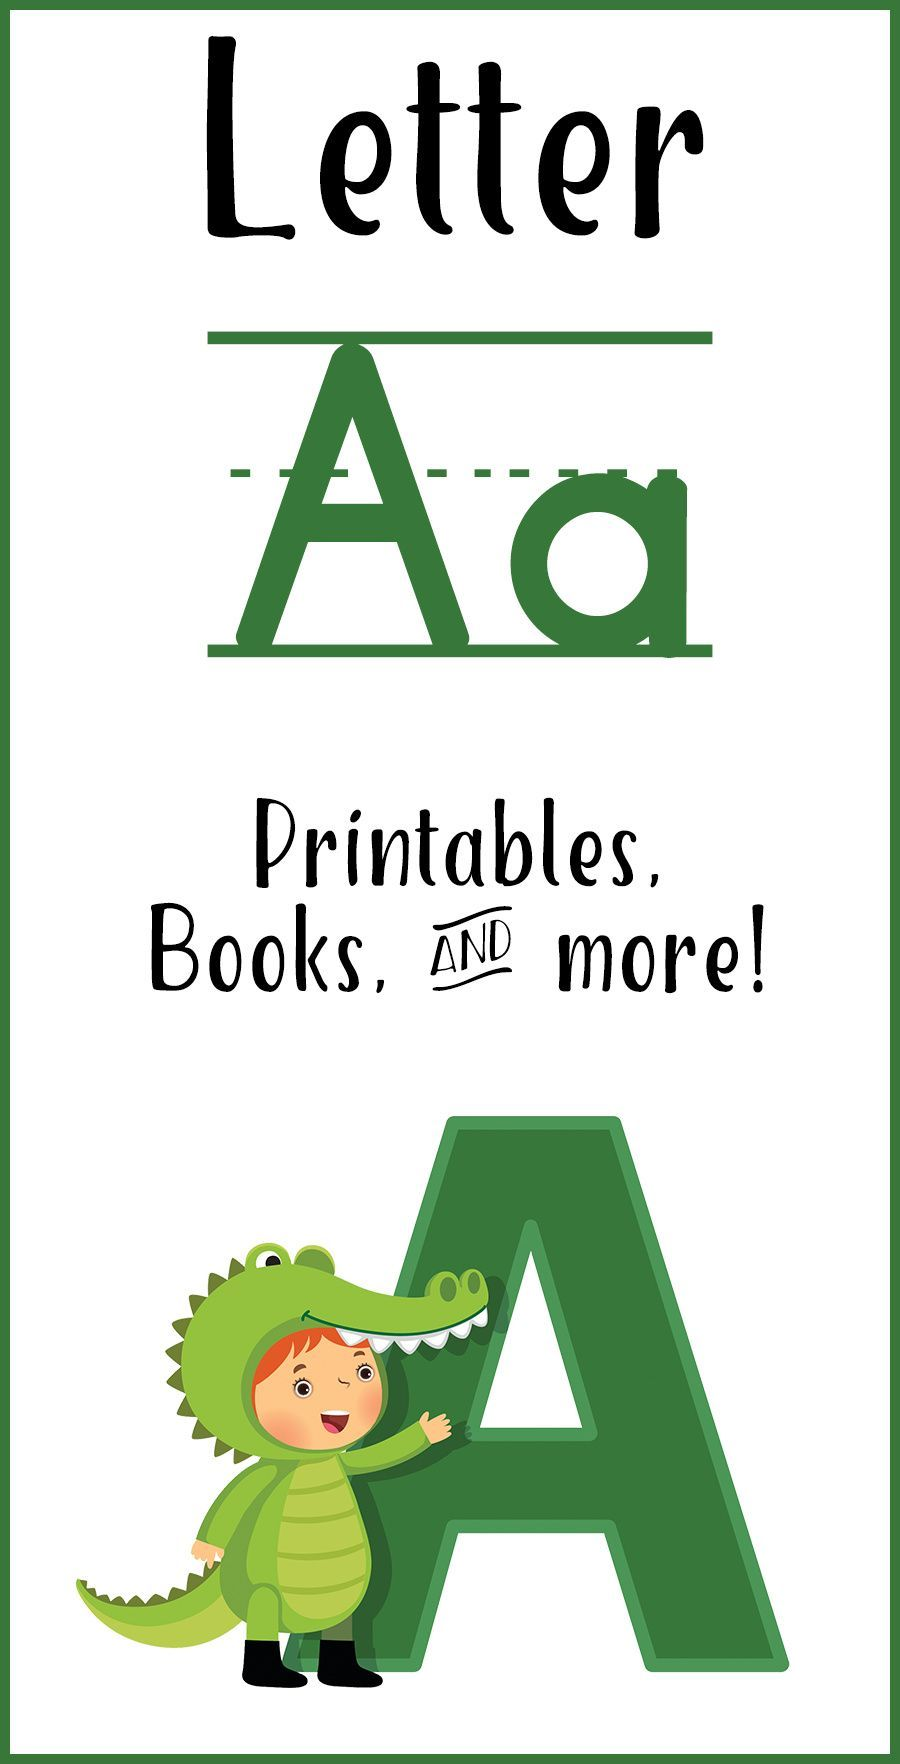 Letter A Printables Books And Activities 1 1 1 1 Homeschool Lesson Planner Homeschool Lesson Plans Homeschool [ 1764 x 900 Pixel ]